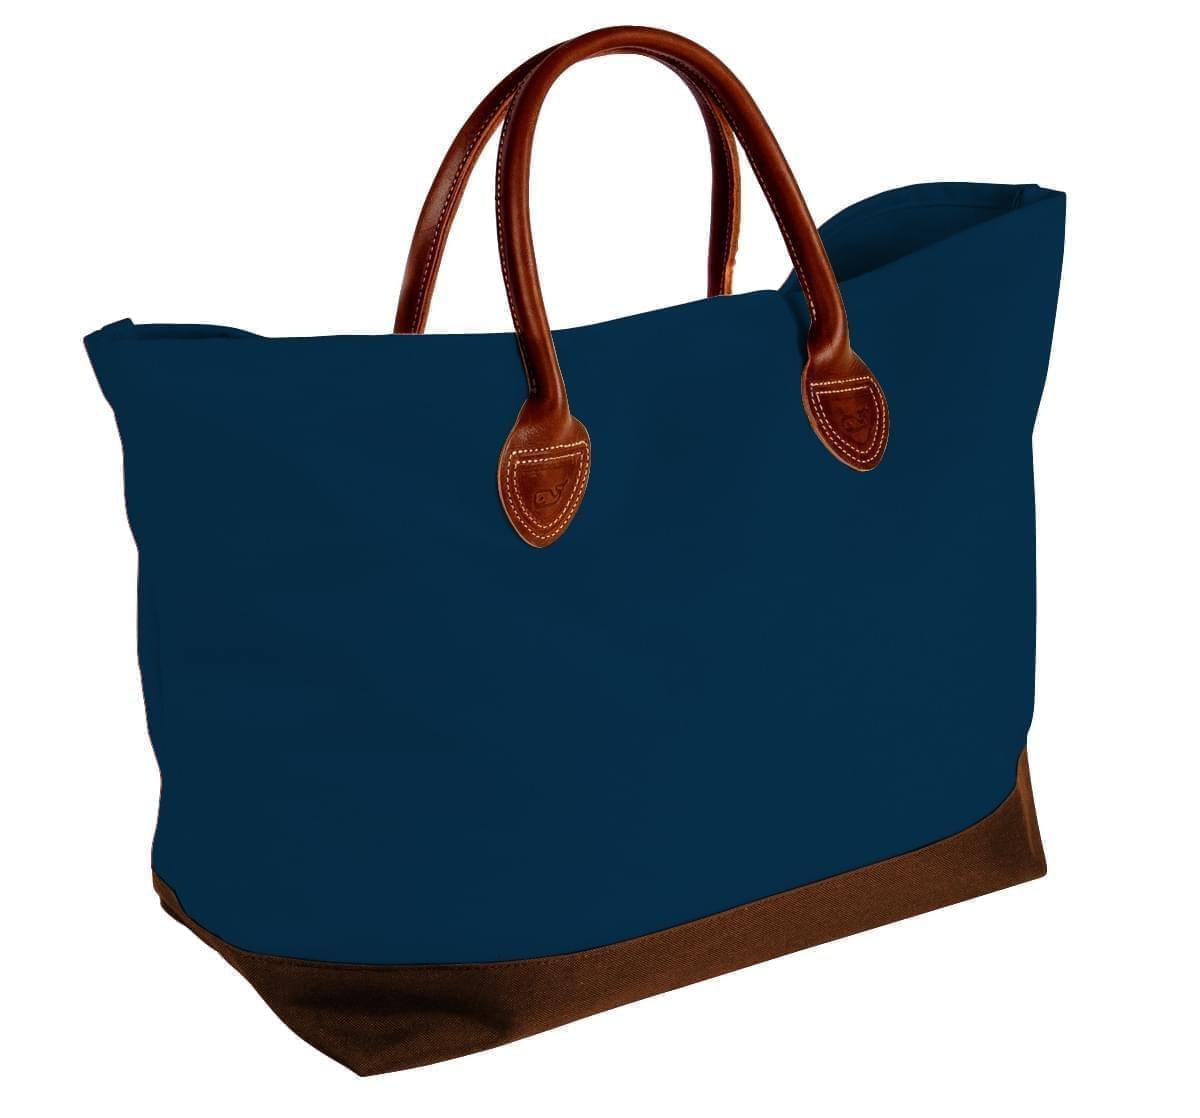 USA Made Canvas Leather Handle Totes, Navy-Brown, 10899-DC9